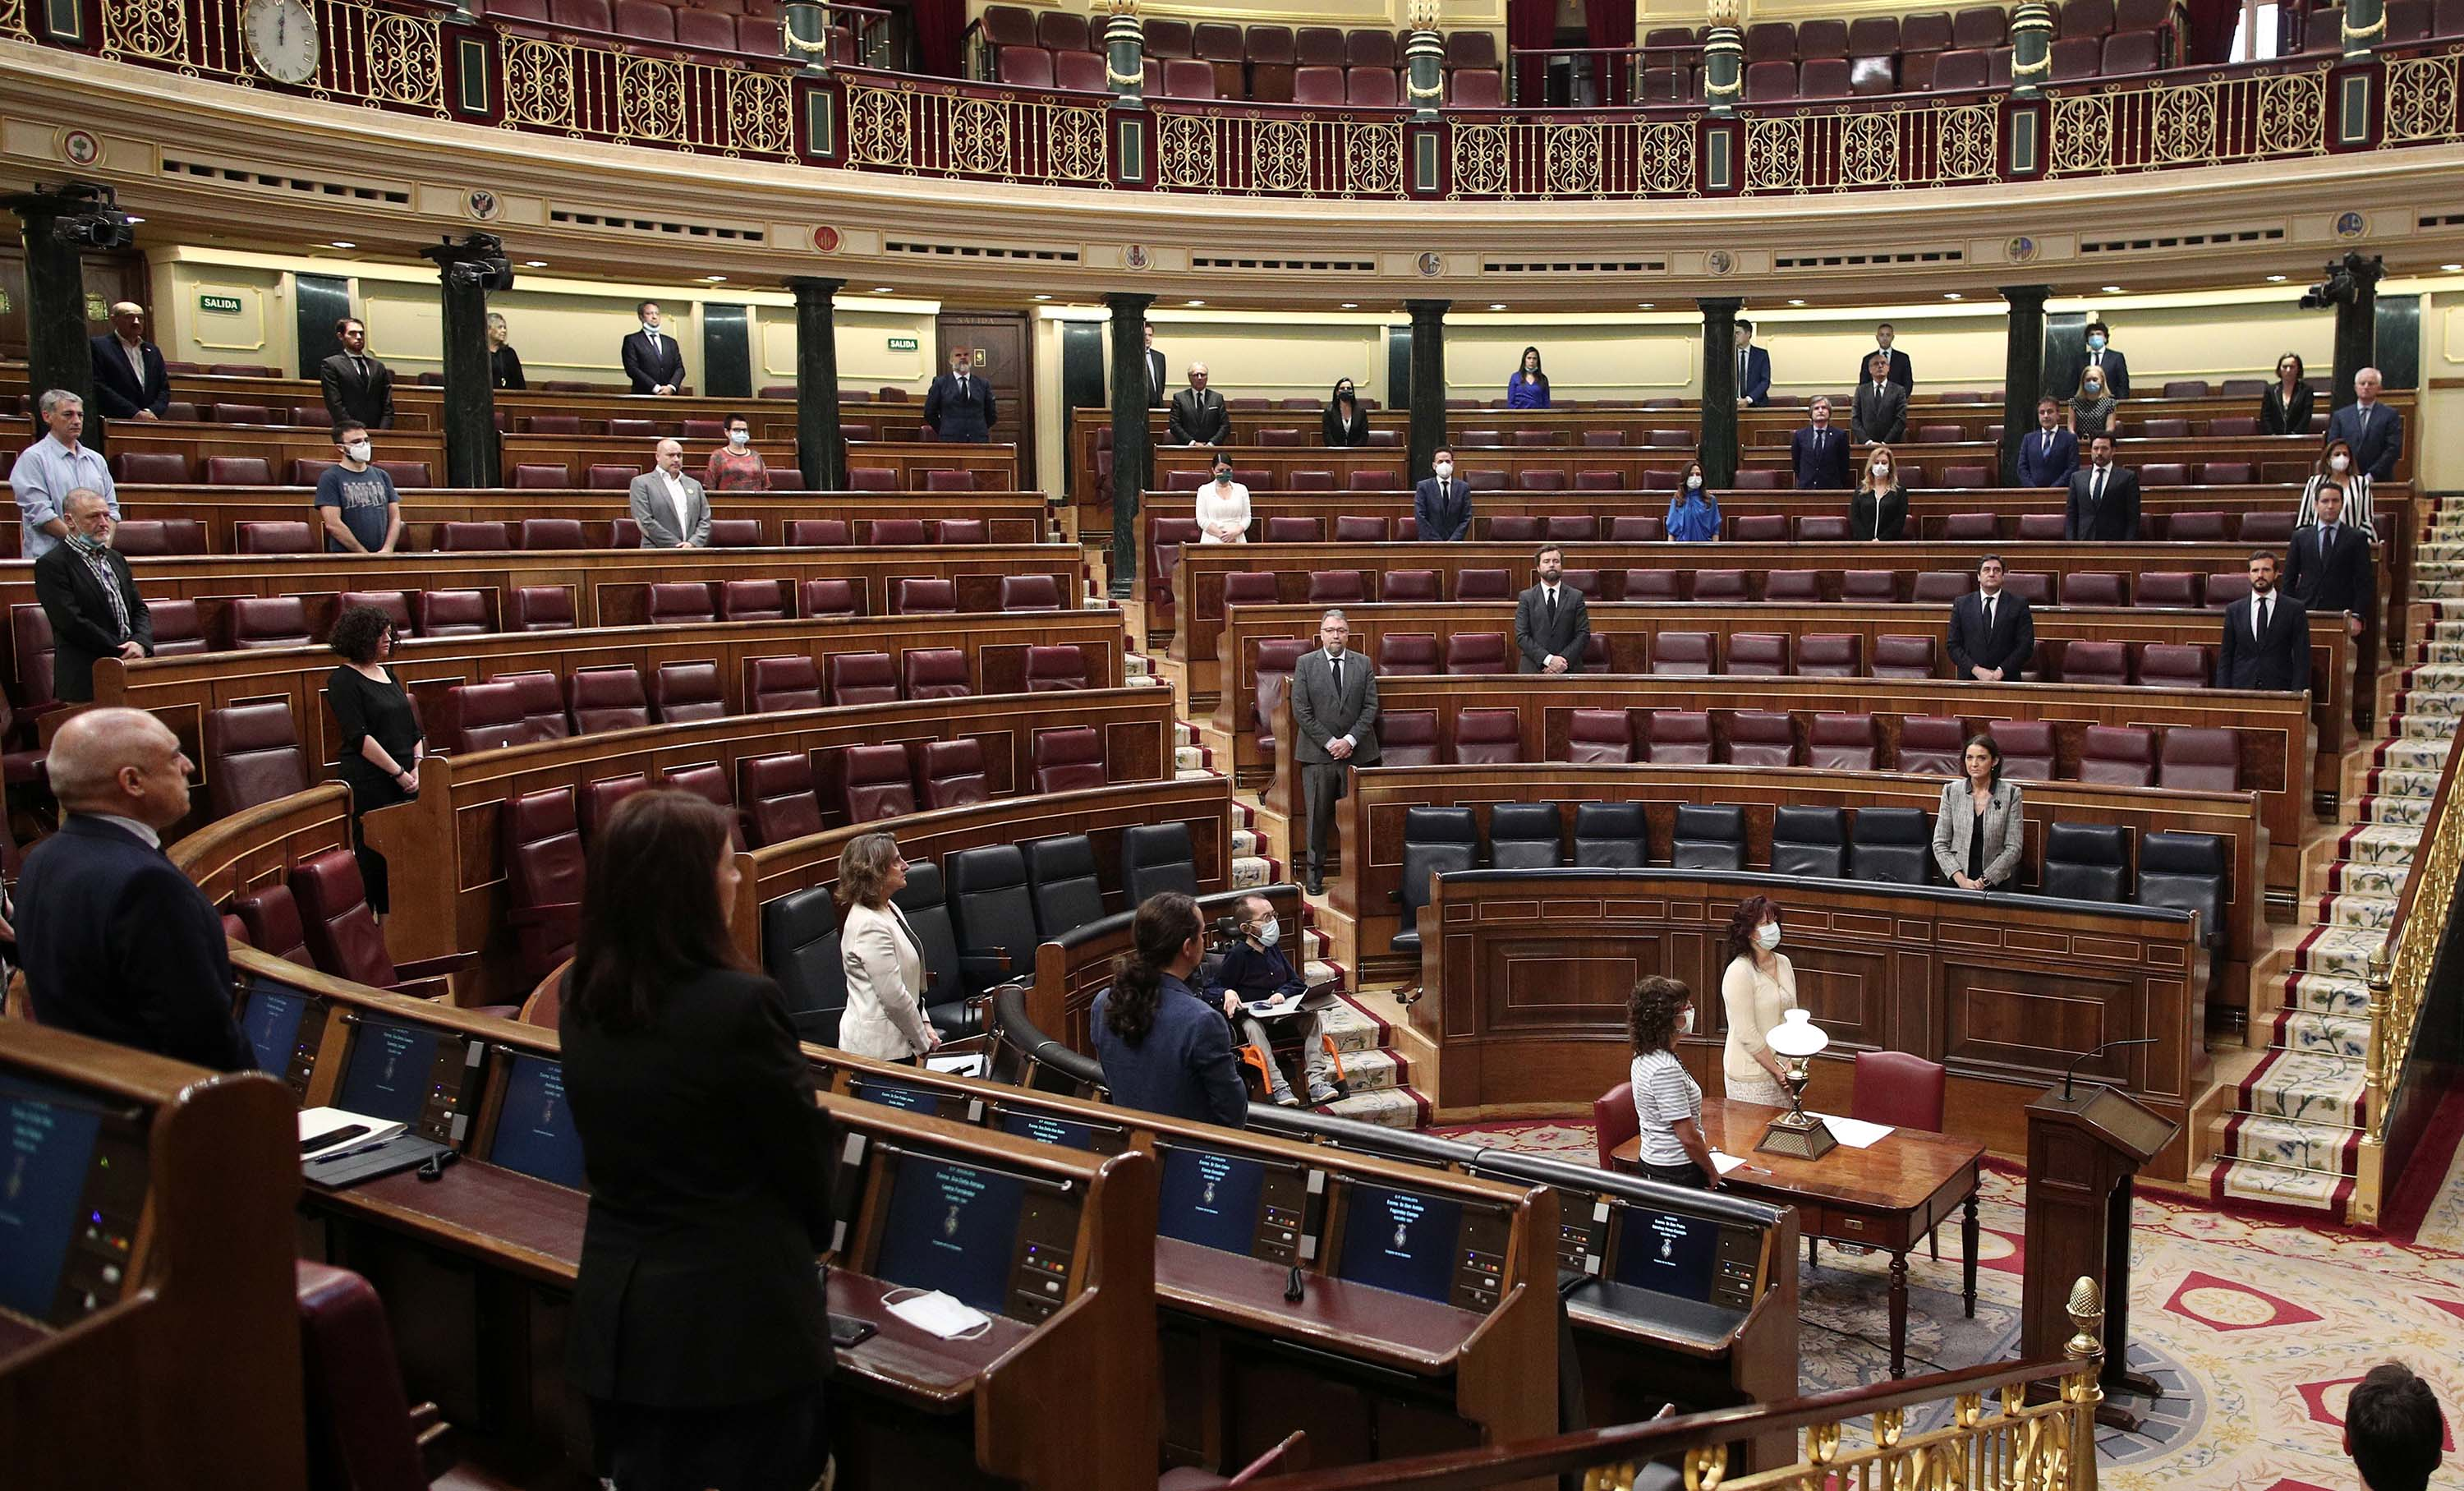 A minute of silence is held to honor coronavirus victims during a plenary session in the Congress of Deputies in Madrid, Spain, on Wednesday, May 27.